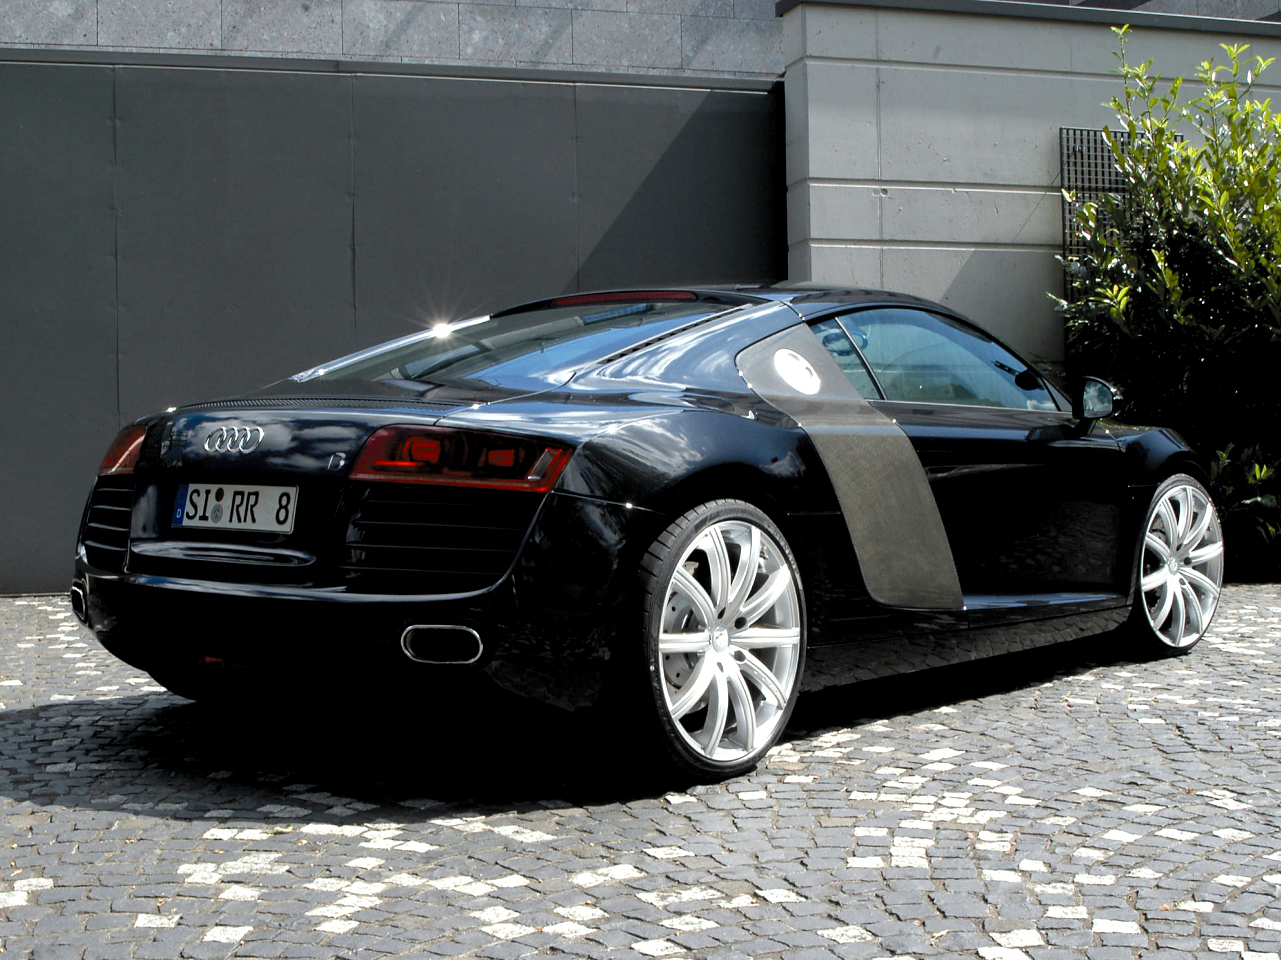 Audi R8 by B6B with 20inxch wheels - side-rear view